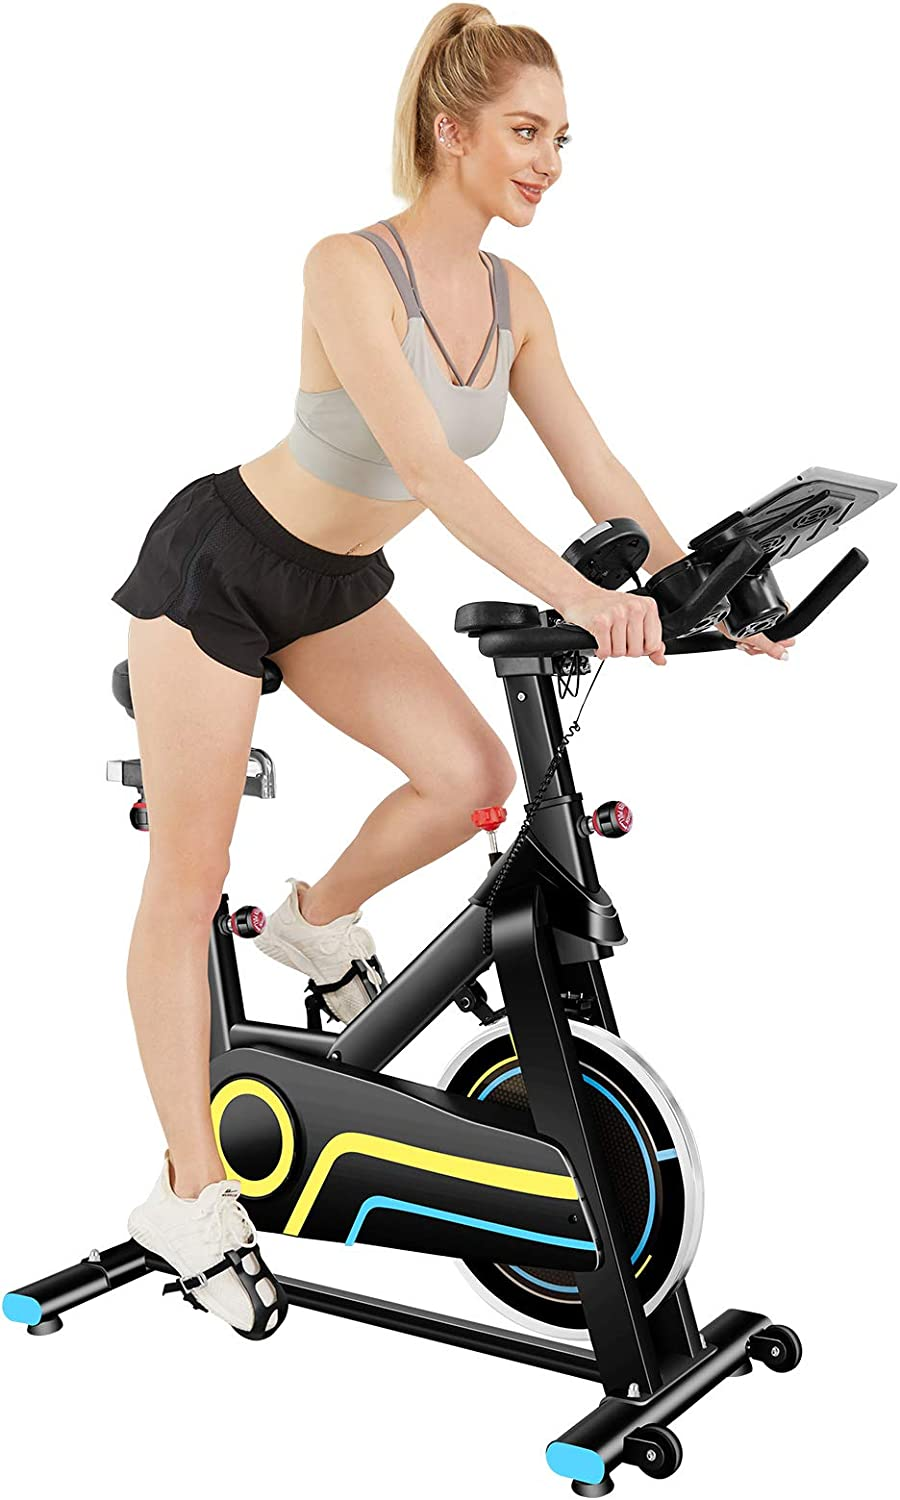 ANCHEER Indoor Exercise Bike Stationary 5% OFF 49Lbs shop Cycling with